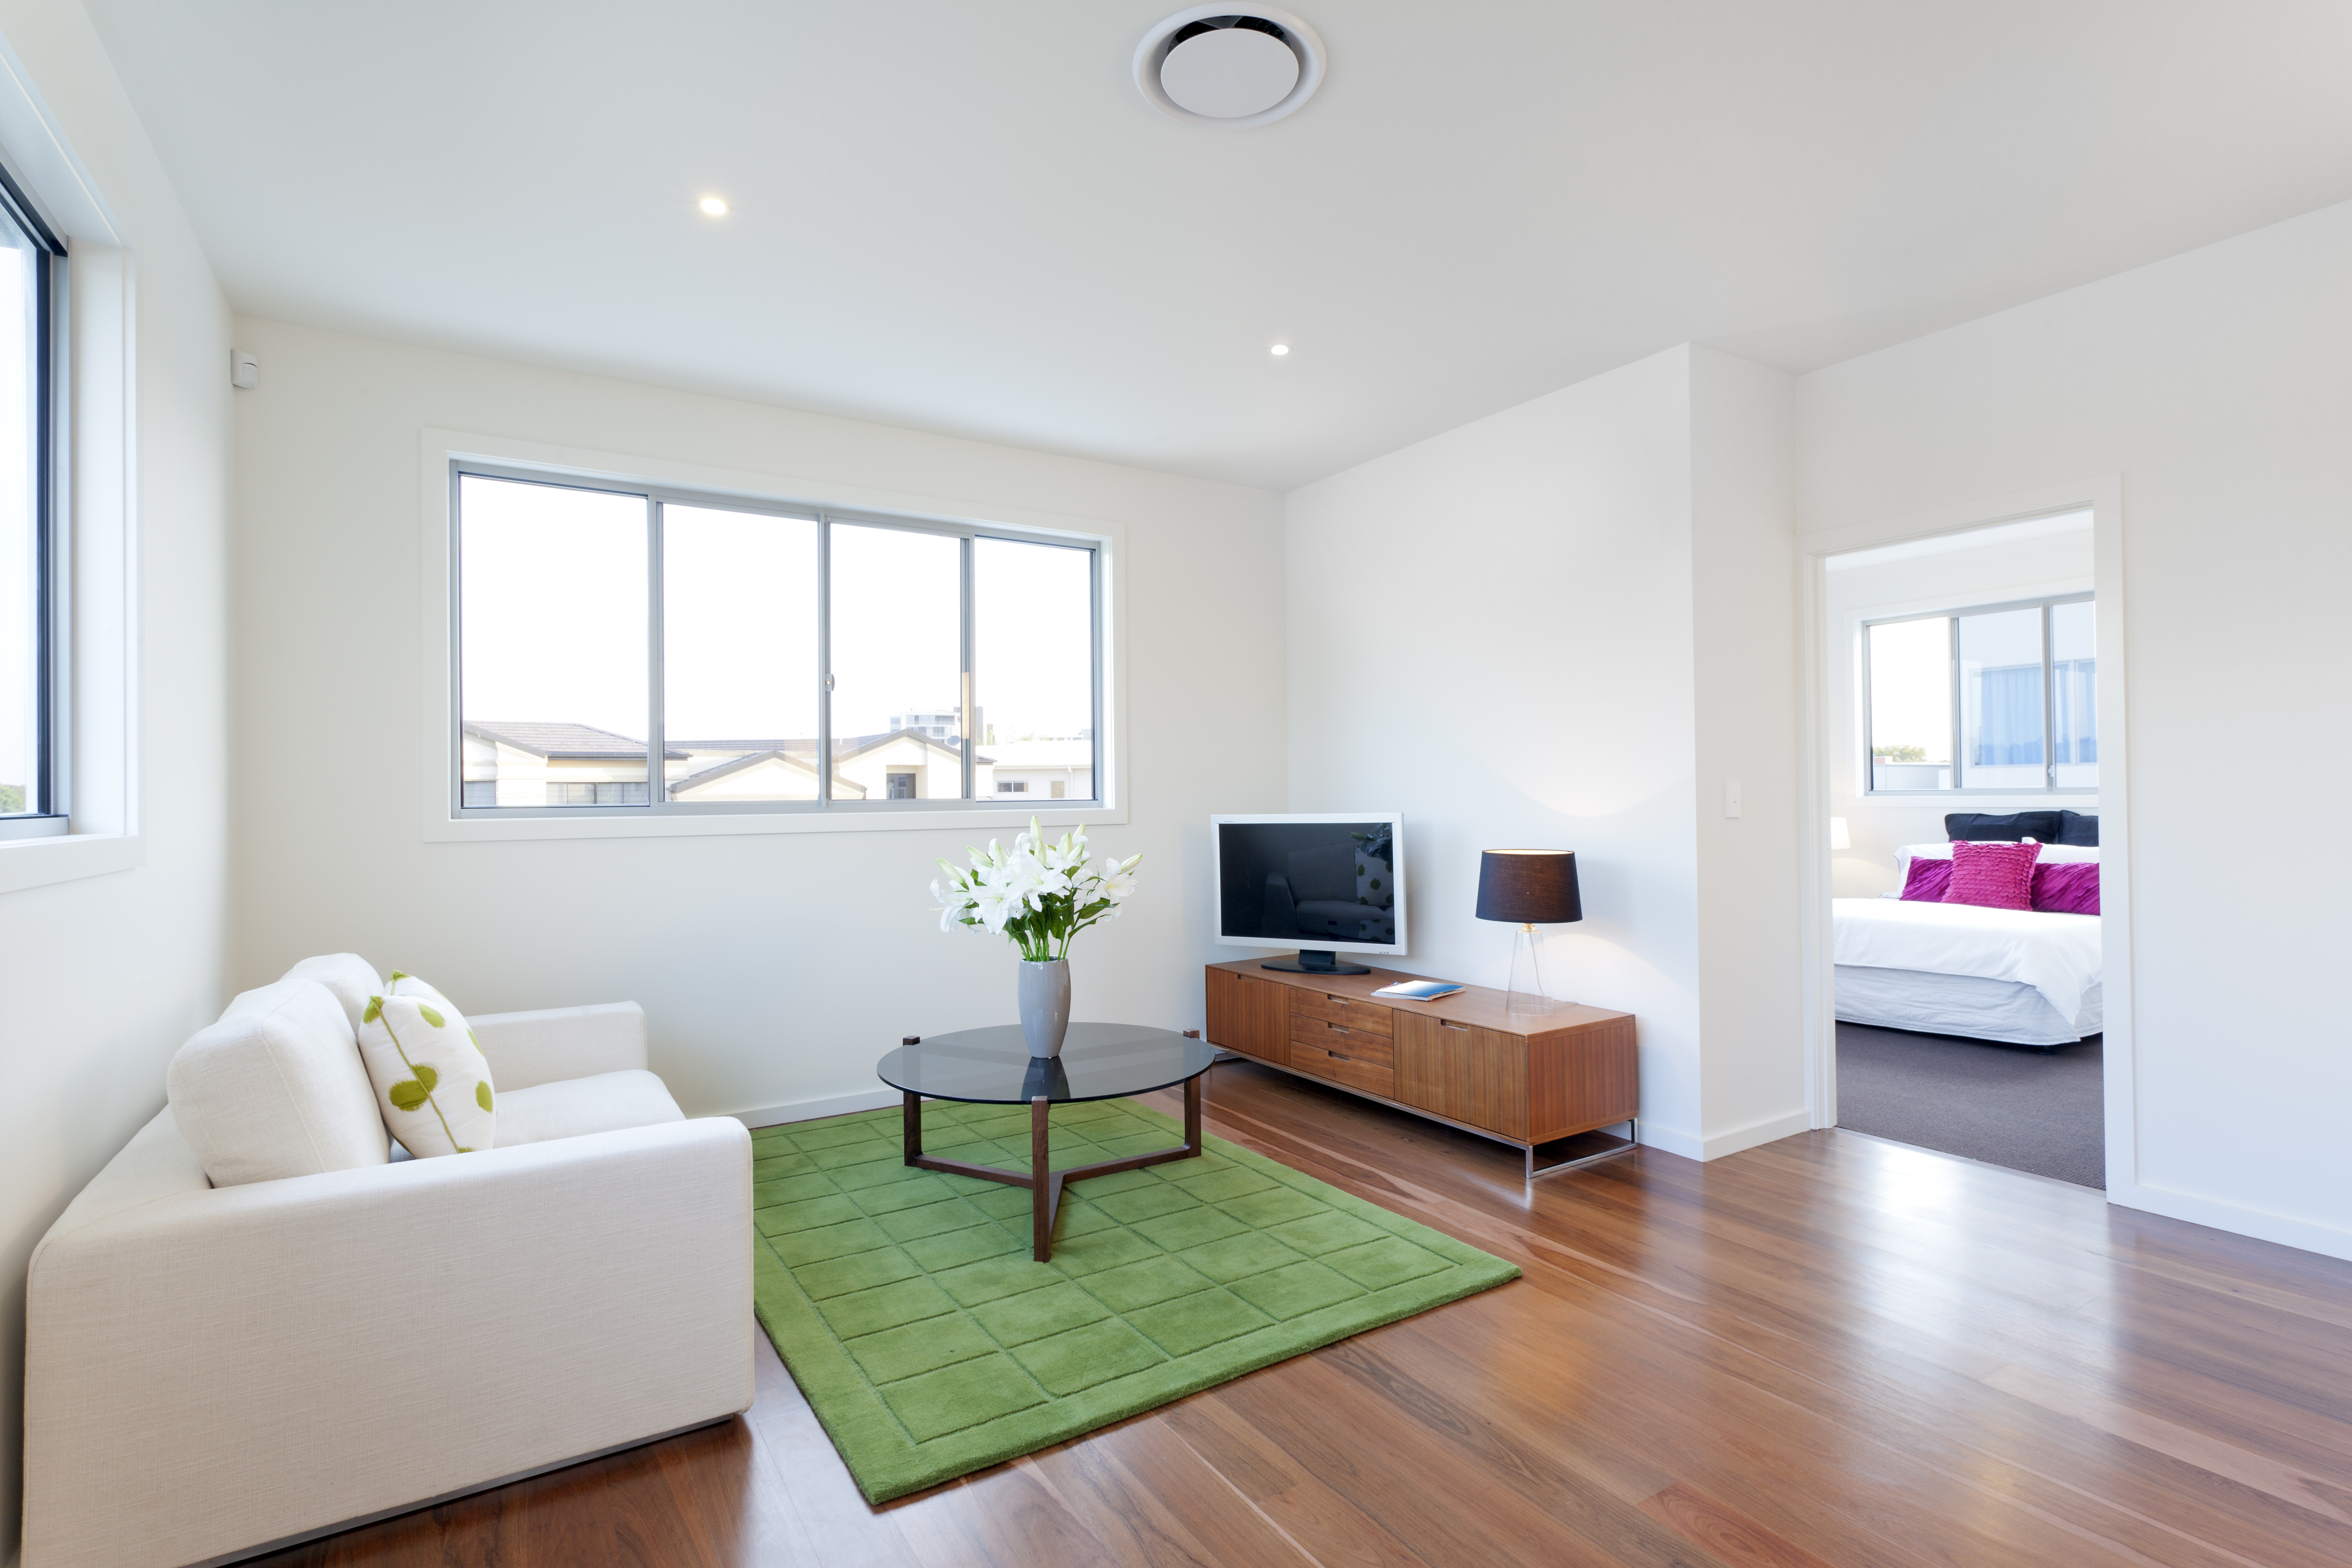 Minimalism is a seldom used form of home decor in india where people associate a well furnished house with prosperity and social status they are afraid to